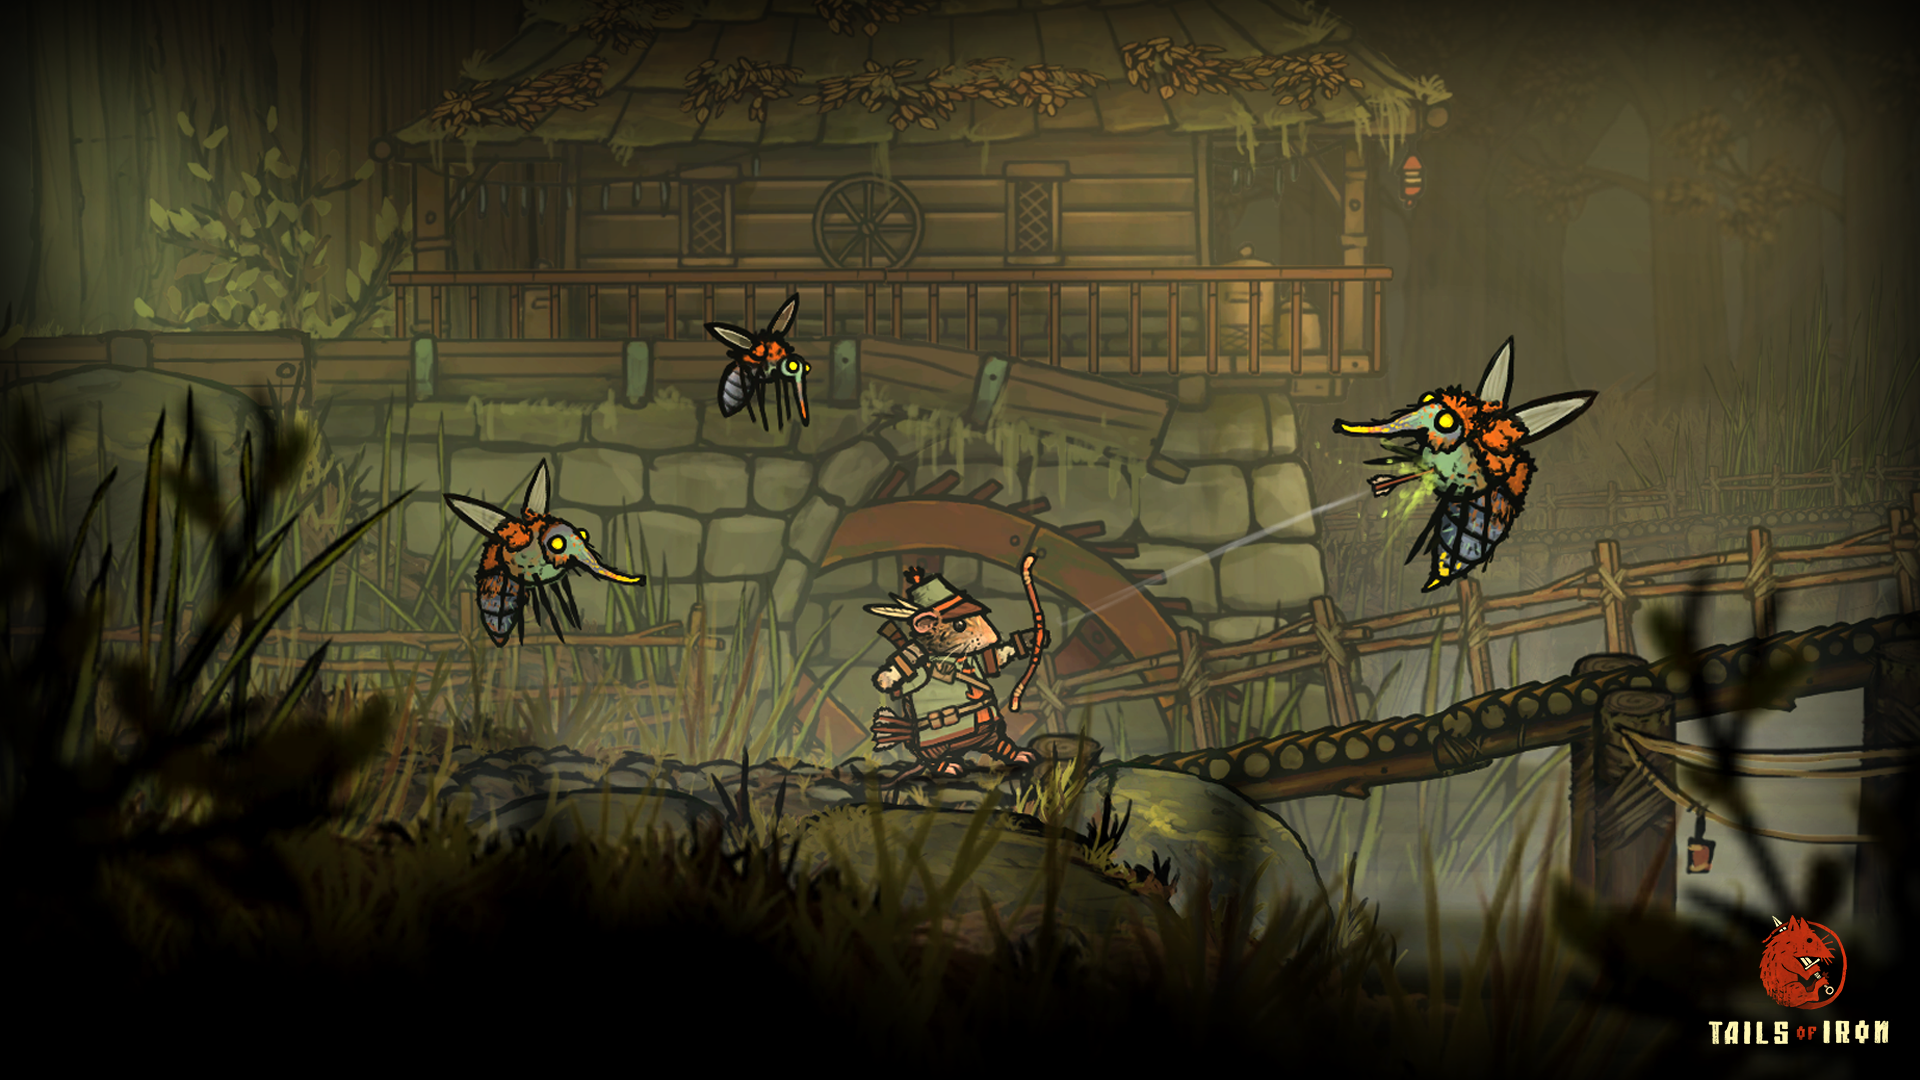 Tails of Iron is an Adventure RPG-lite game set in a charming and brutal world